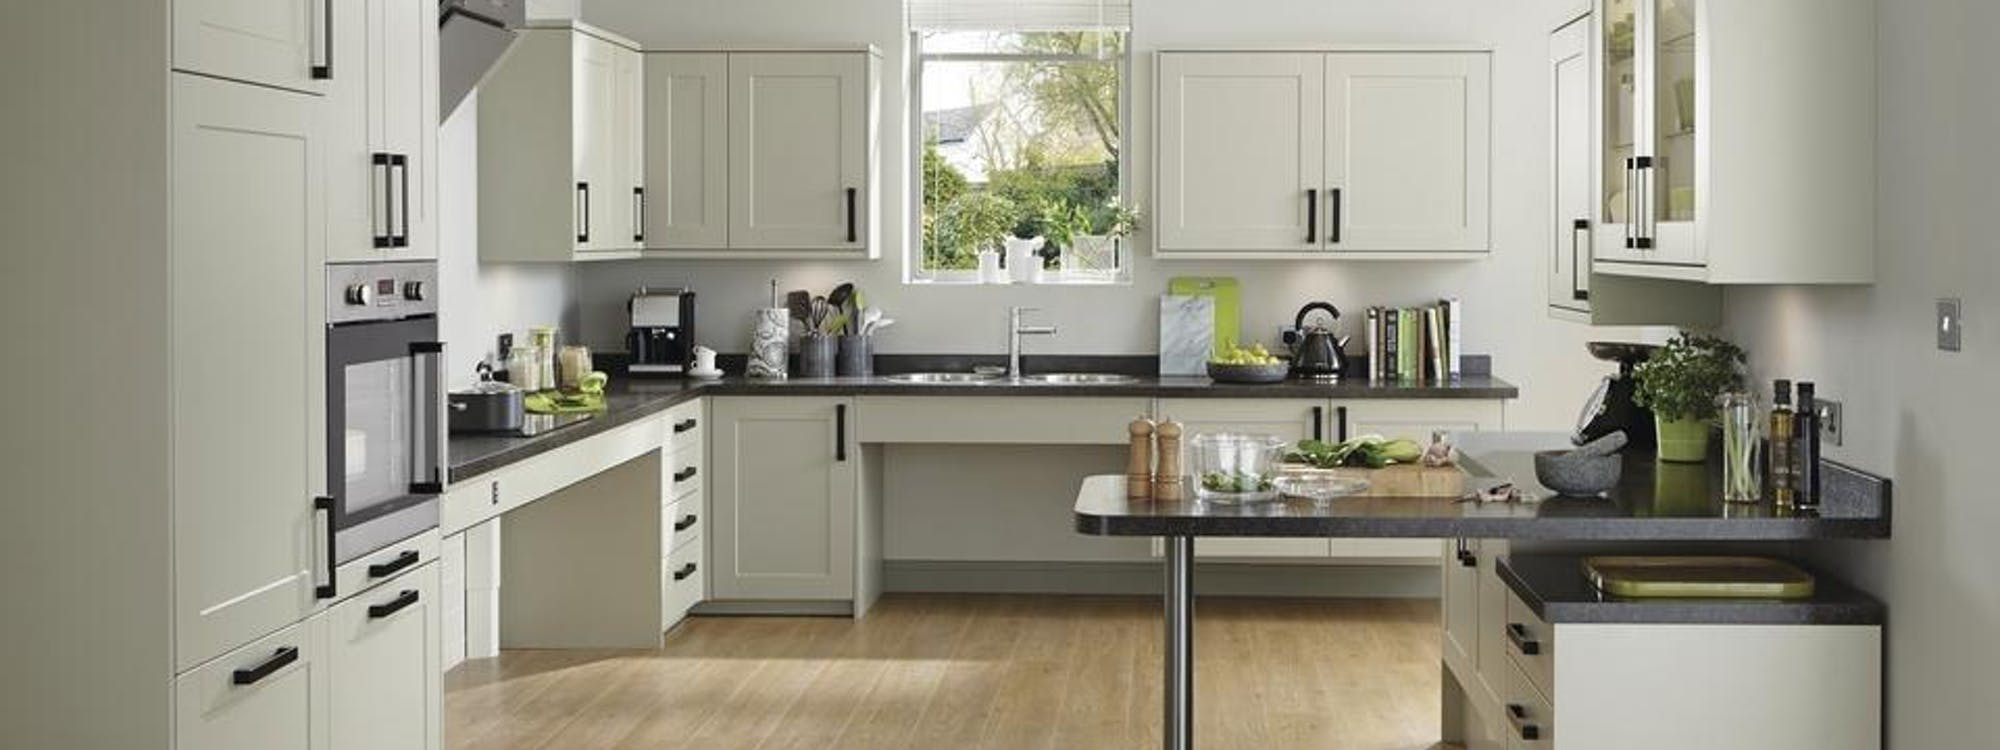 Accessible Kitchen Design | More Kitchens